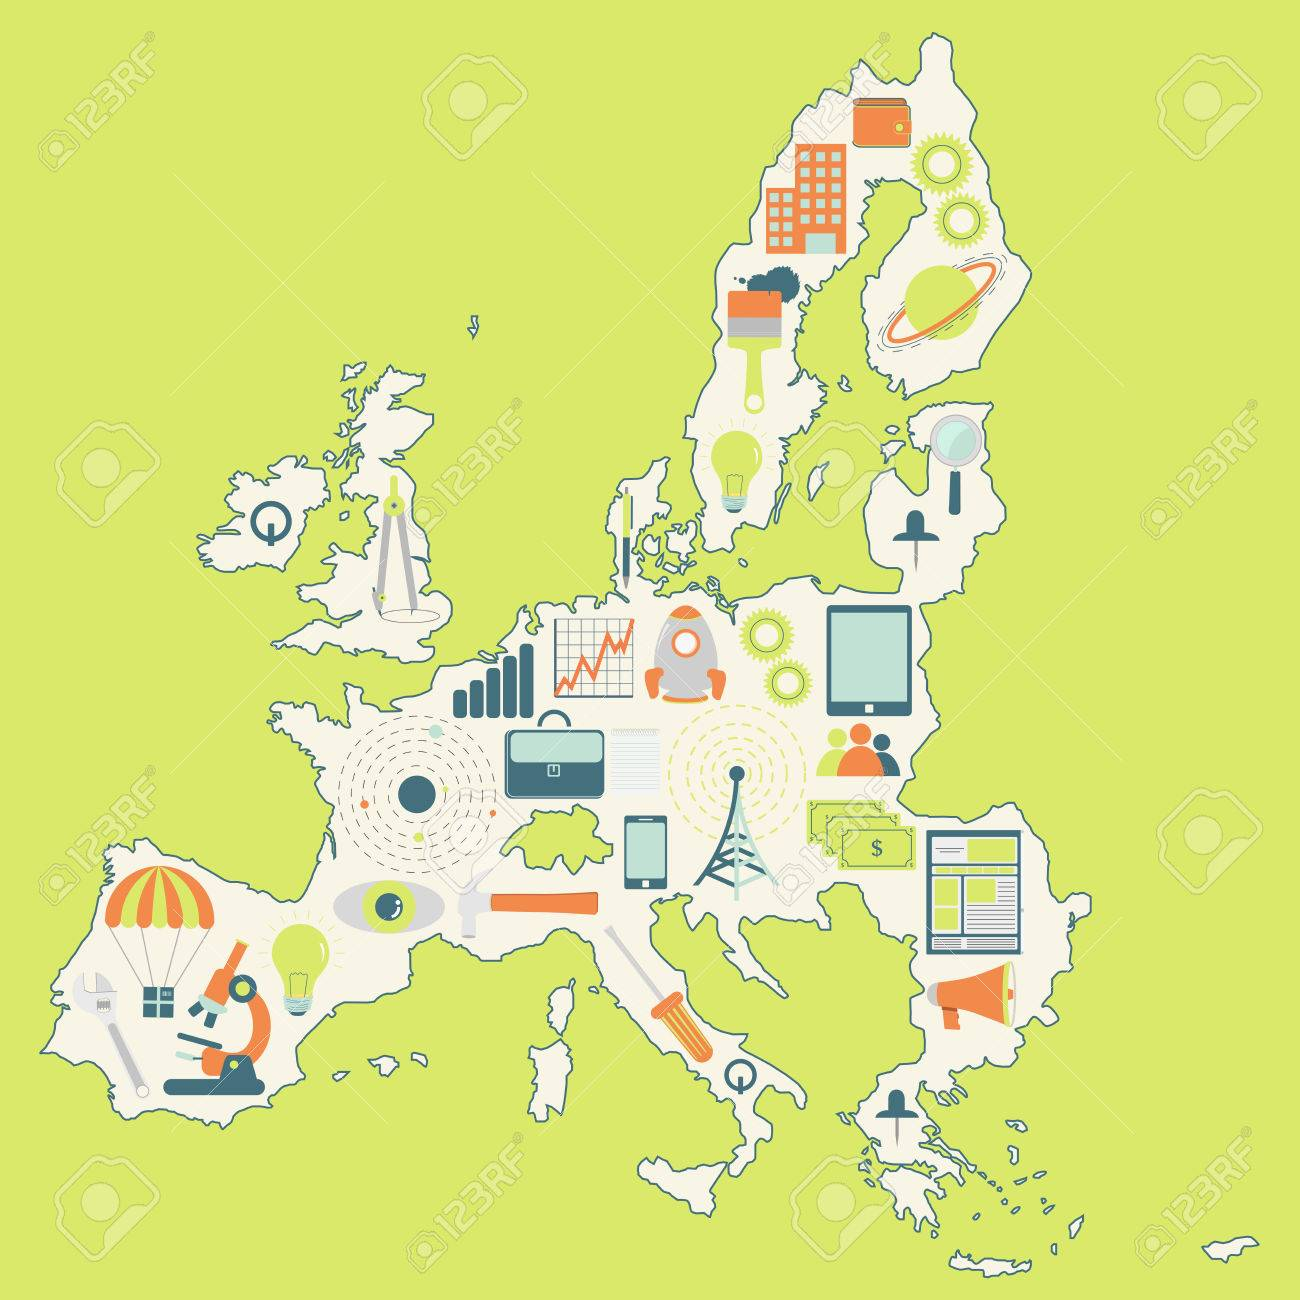 Icons Map Of Eu on india map icon, uk map icon, italy map icon, africa map icon, travel map icon, emea map icon, usa map icon, china map icon, russia map icon, mexico map icon, canada map icon, gps map icon, singapore map icon, brazil map icon, japan map icon, hk map icon, pa map icon, asia map icon, regional map icon, europe map icon,